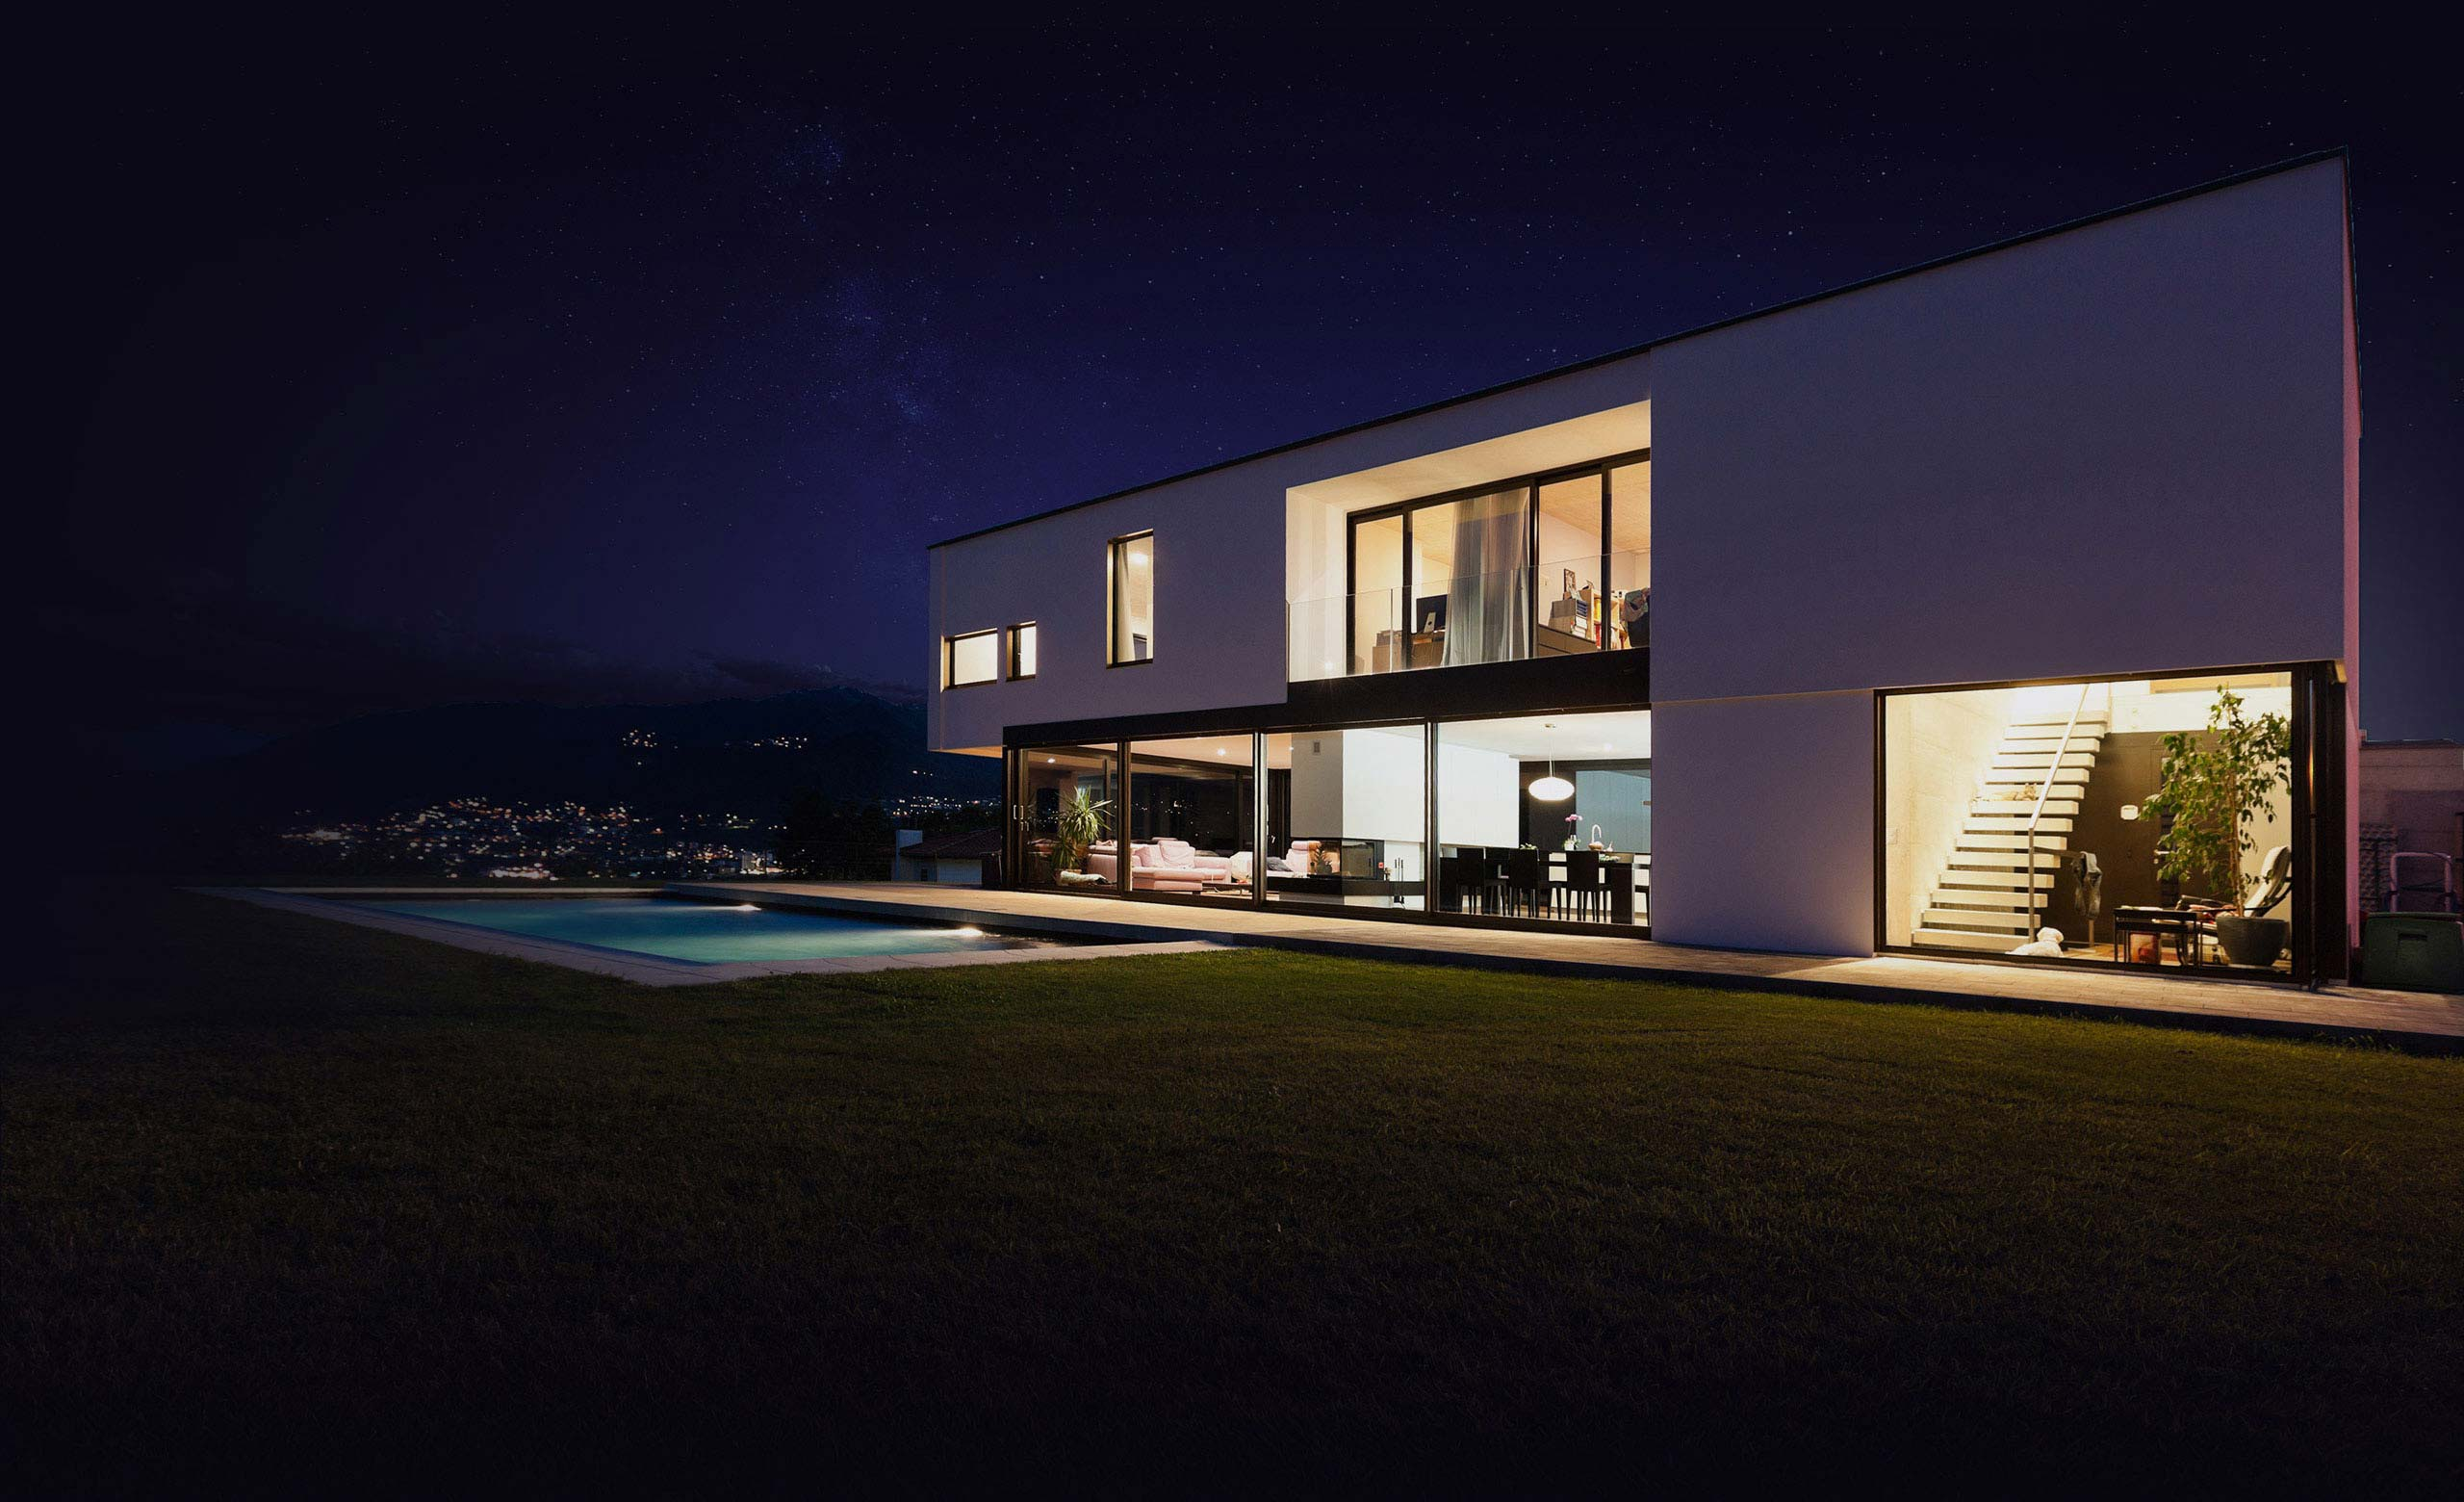 Smart lighting in your house